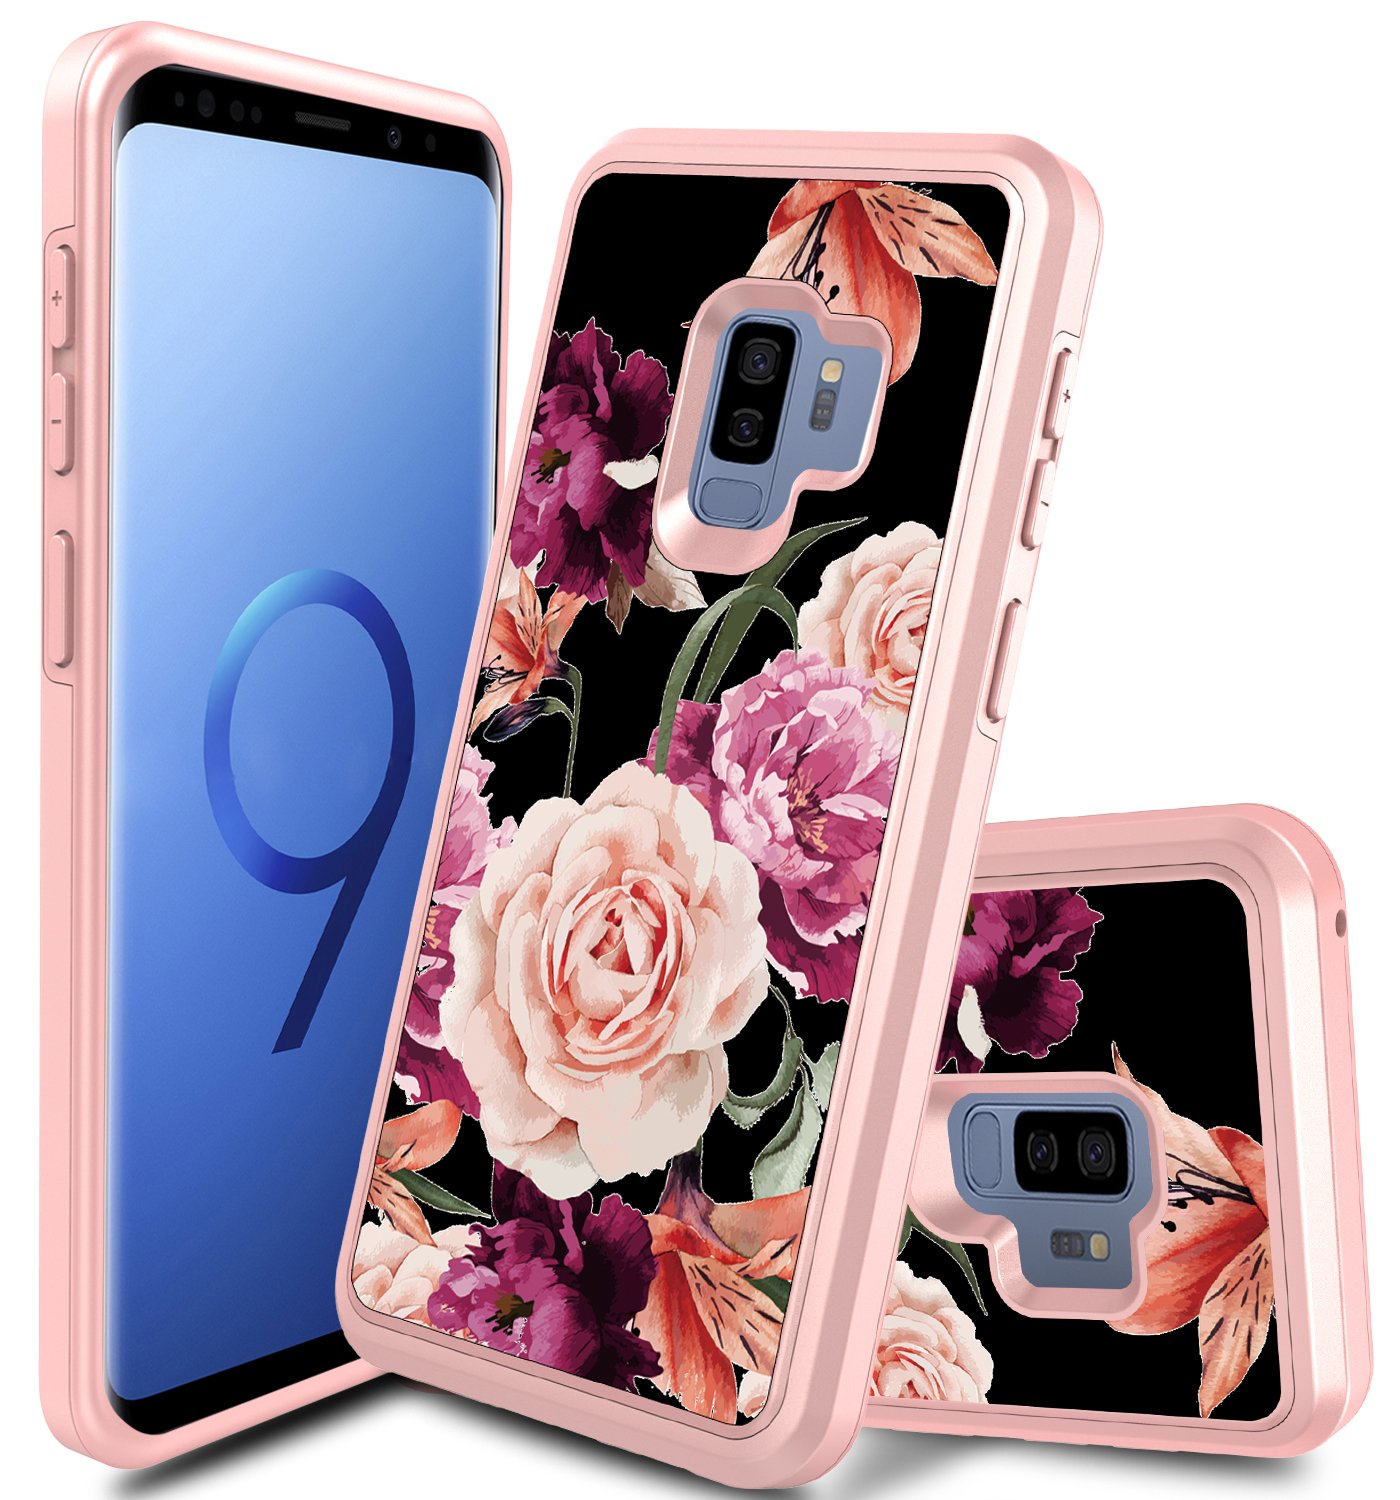 Galaxy S9 Case, S9 Case Rugged, Slim Hybrid Heavy Duty Shockproof Soft Rubber TPU Hard Protective Cover for Samsung Galaxy S9 Without Built in Screen Protector (Floral Rose Gold)